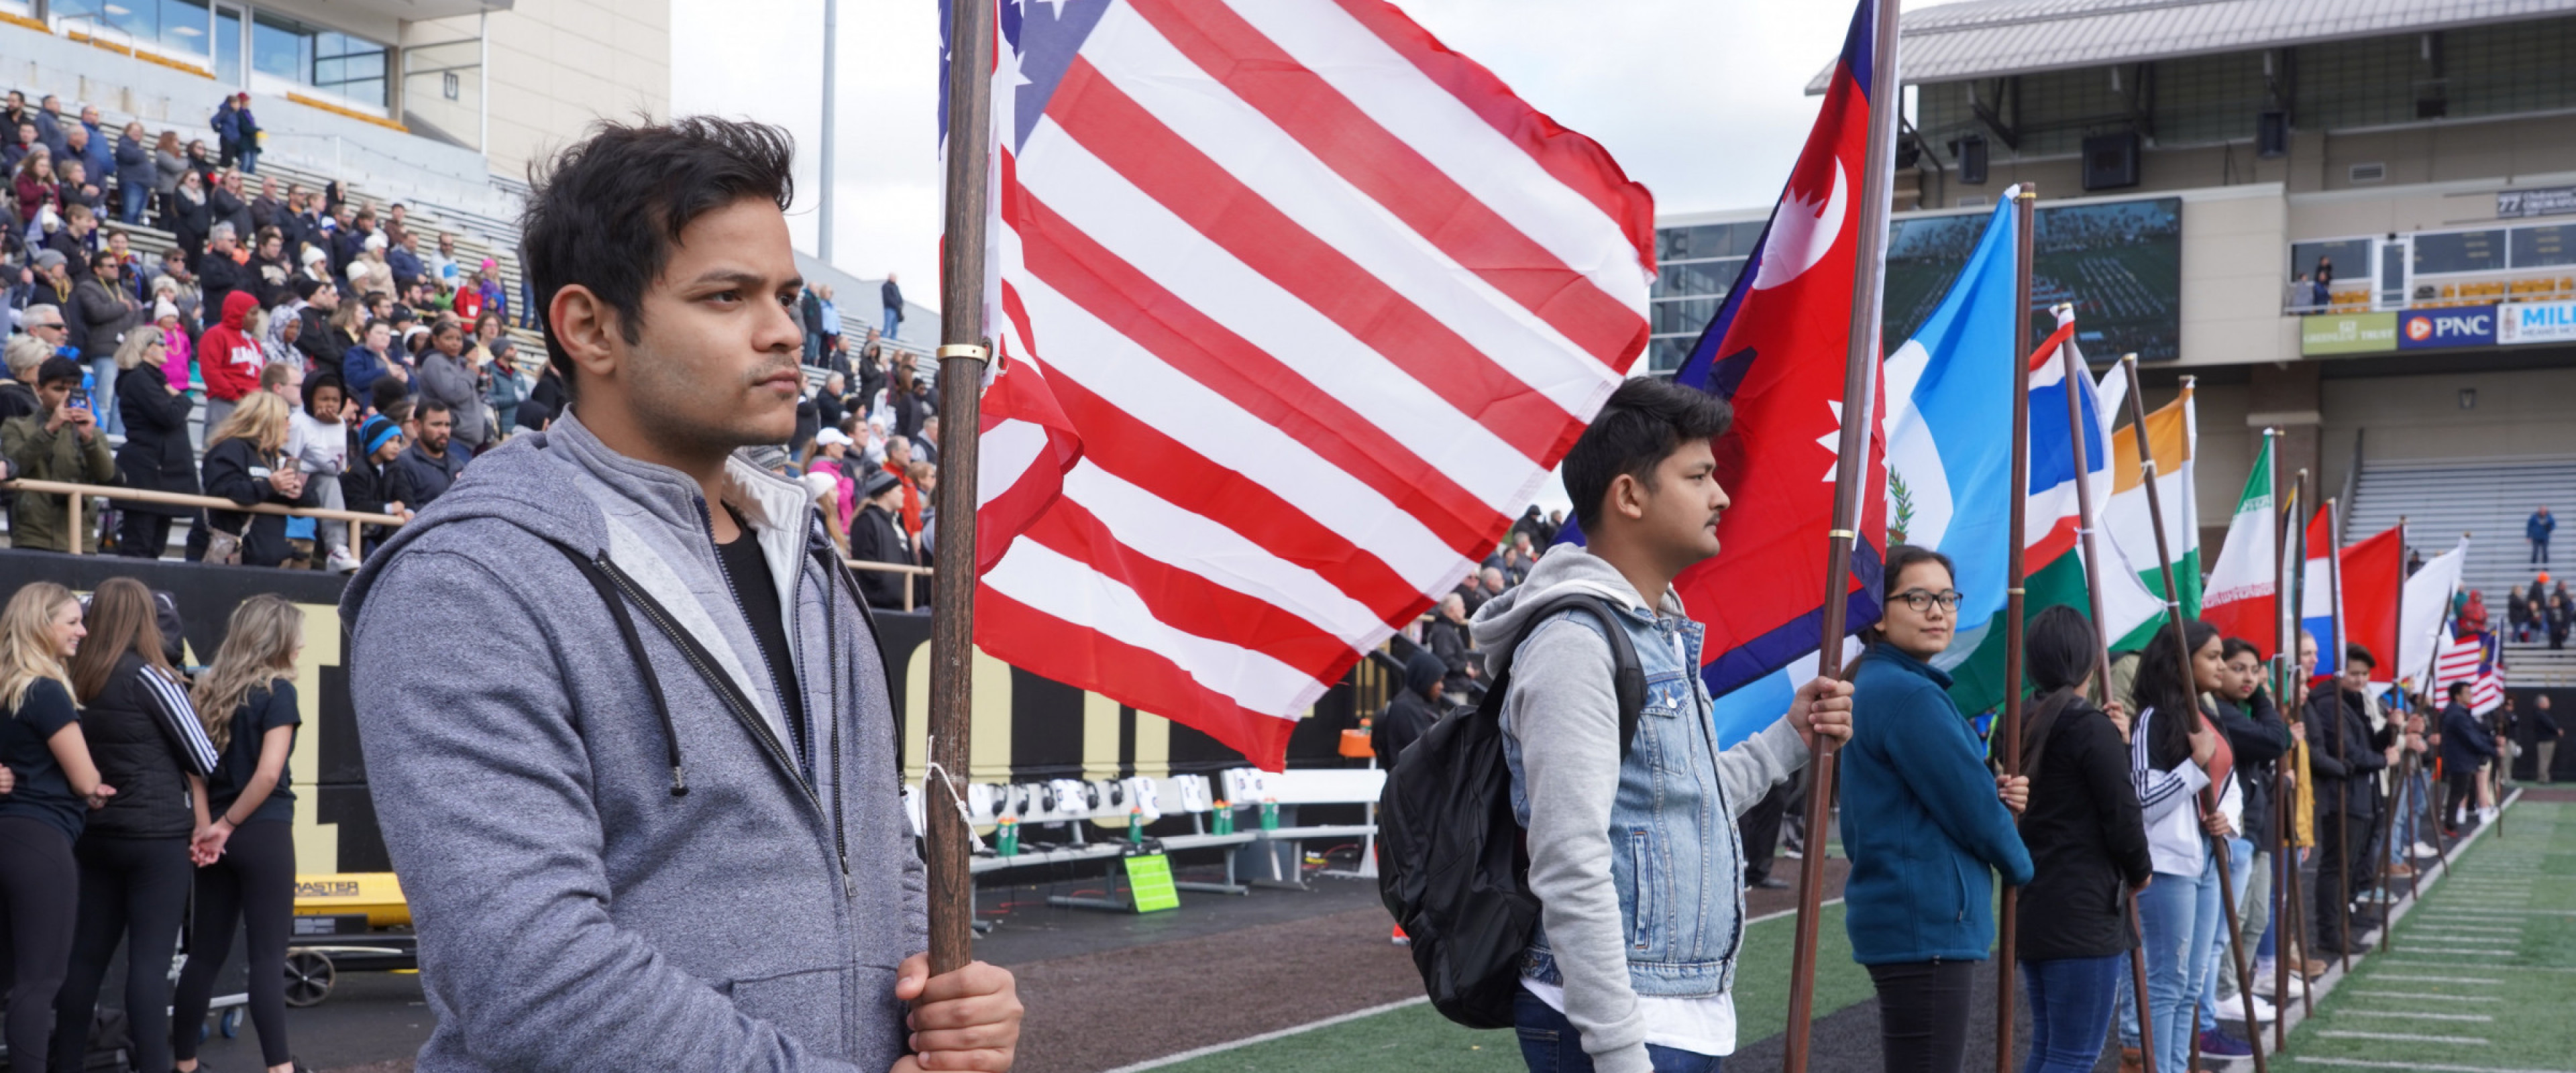 A group of students carries international flags on the field at Waldo Stadium.